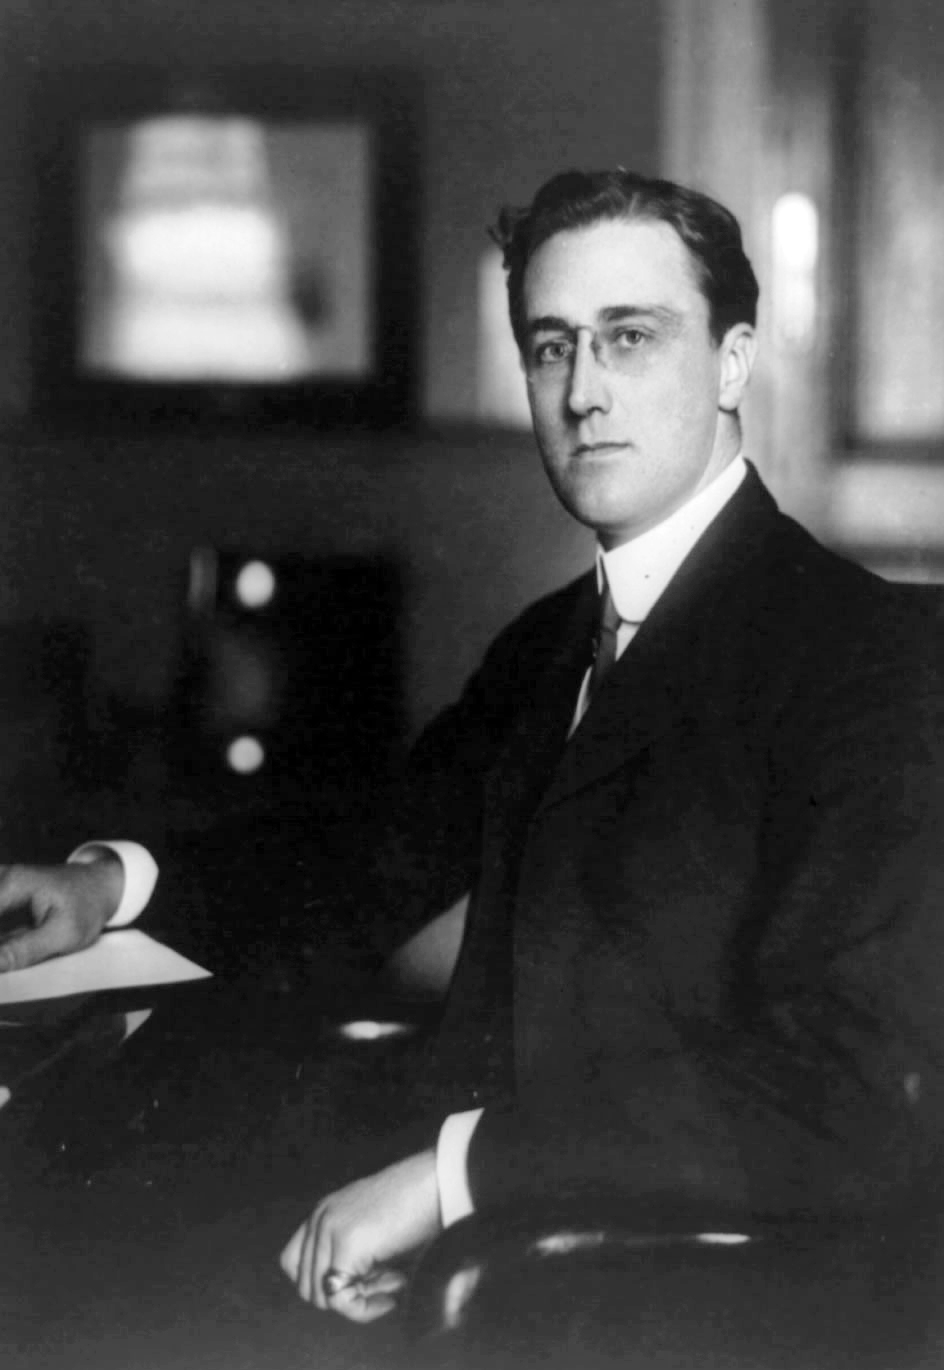 franklin delano roosevelt 1882 1945 biography familypedia franklin delano roosevelt 1882 1945 biography familypedia fandom powered by wikia